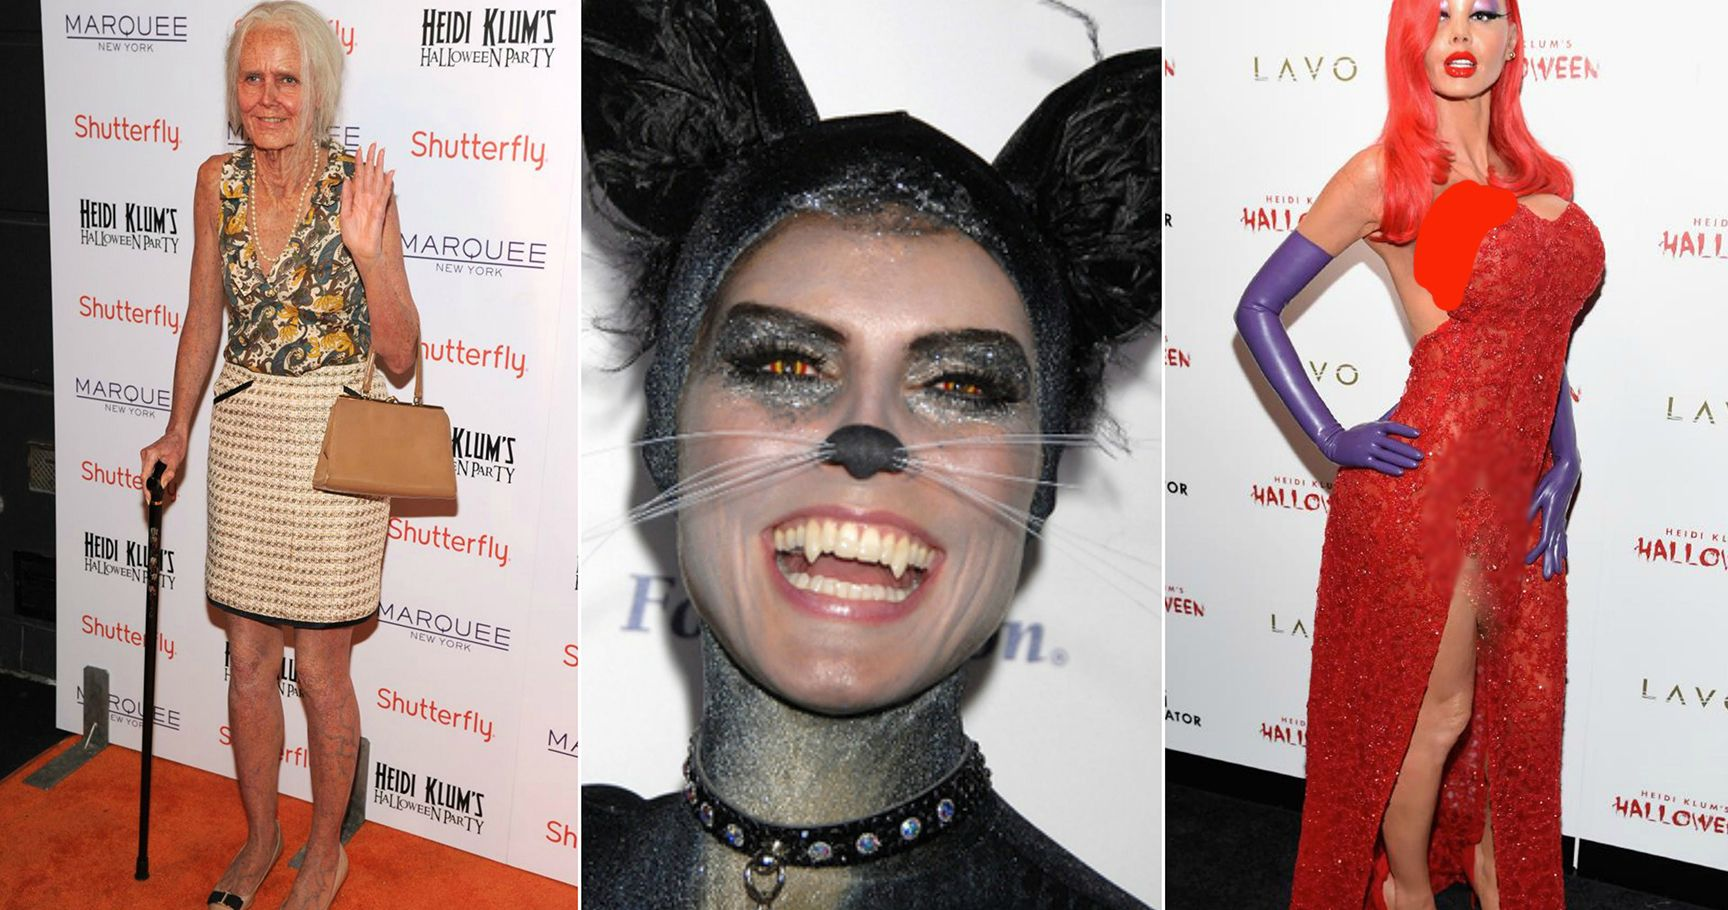 15 Times Heidi Klum Conquered The Halloween Costume Game